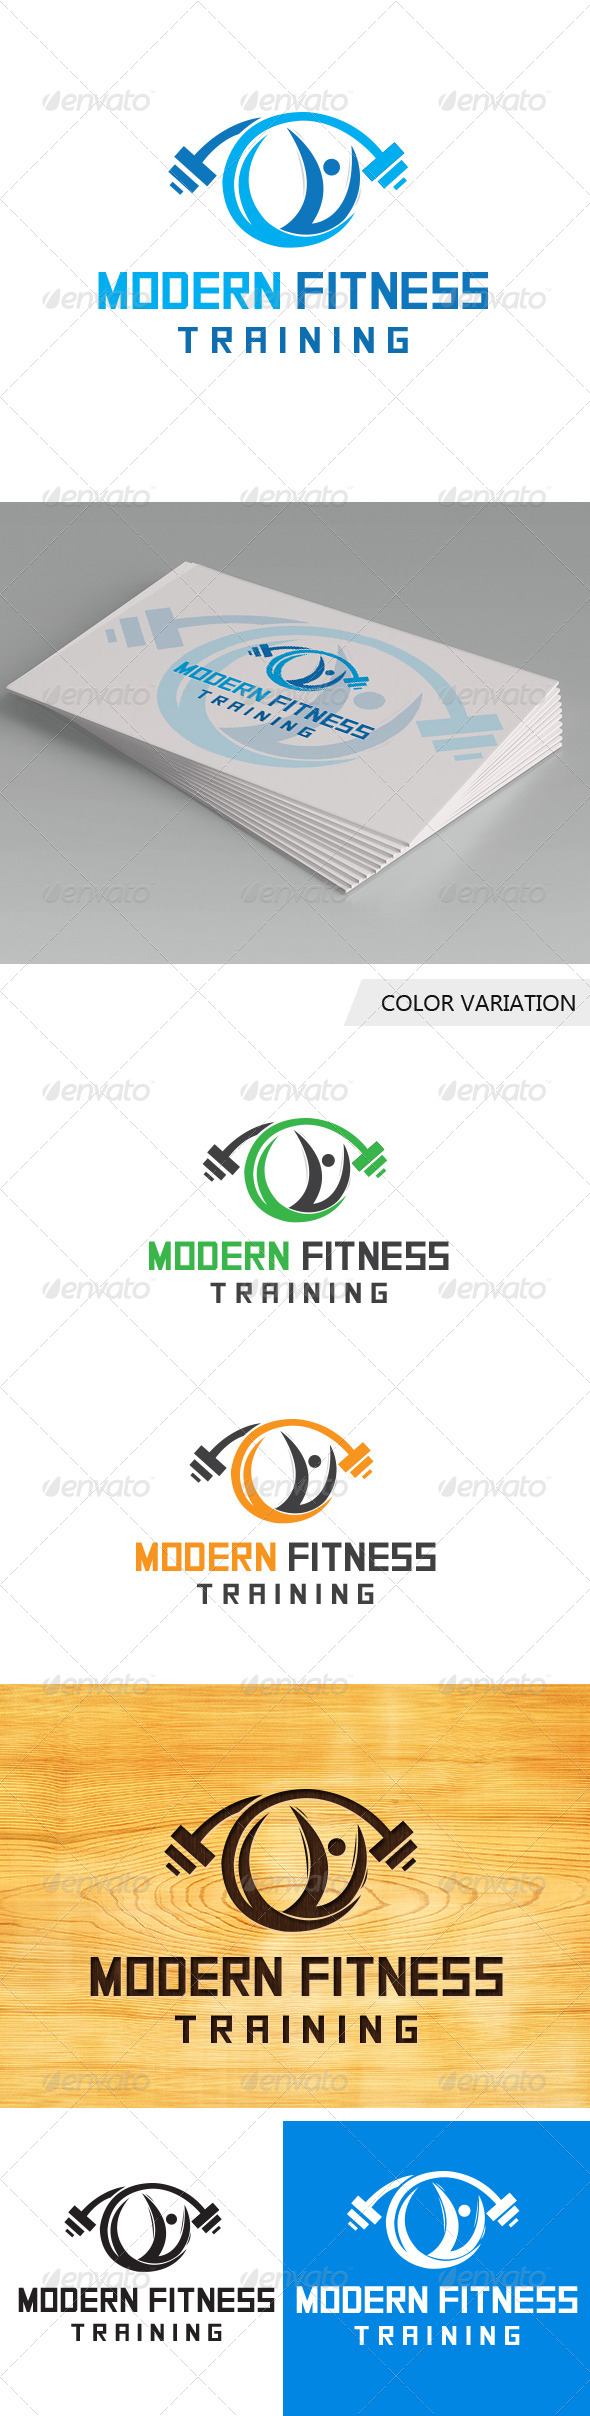 GraphicRiver Modern Fitness Logo Template 5712238